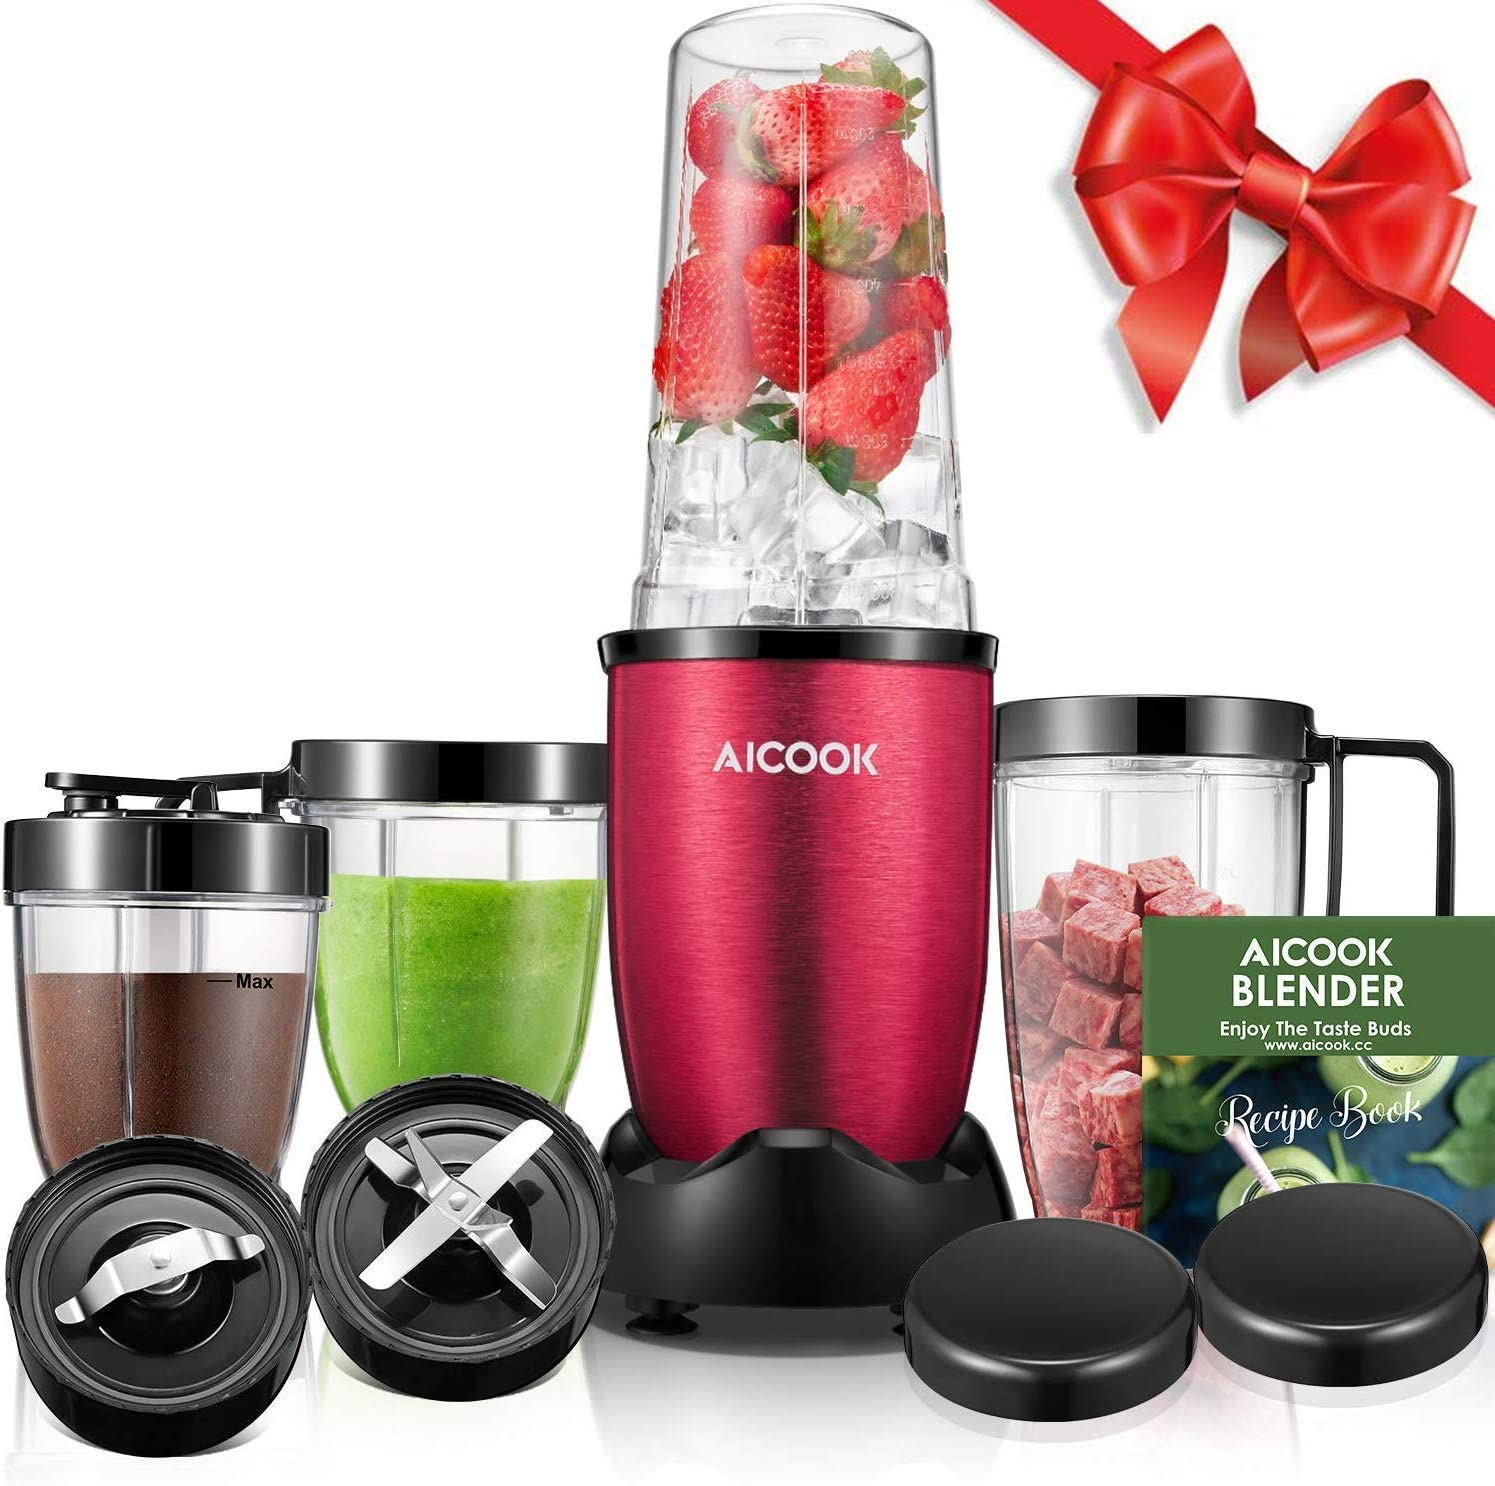 Aicook Smoothie Blender (BPA free), 780W High-Speed Personal Blender, 15-Piece Smoothie Maker/Mixer Included 4-Piece BPA-Free Blender Bottles, Two SUS 304 Stainless Steel Blades, Red